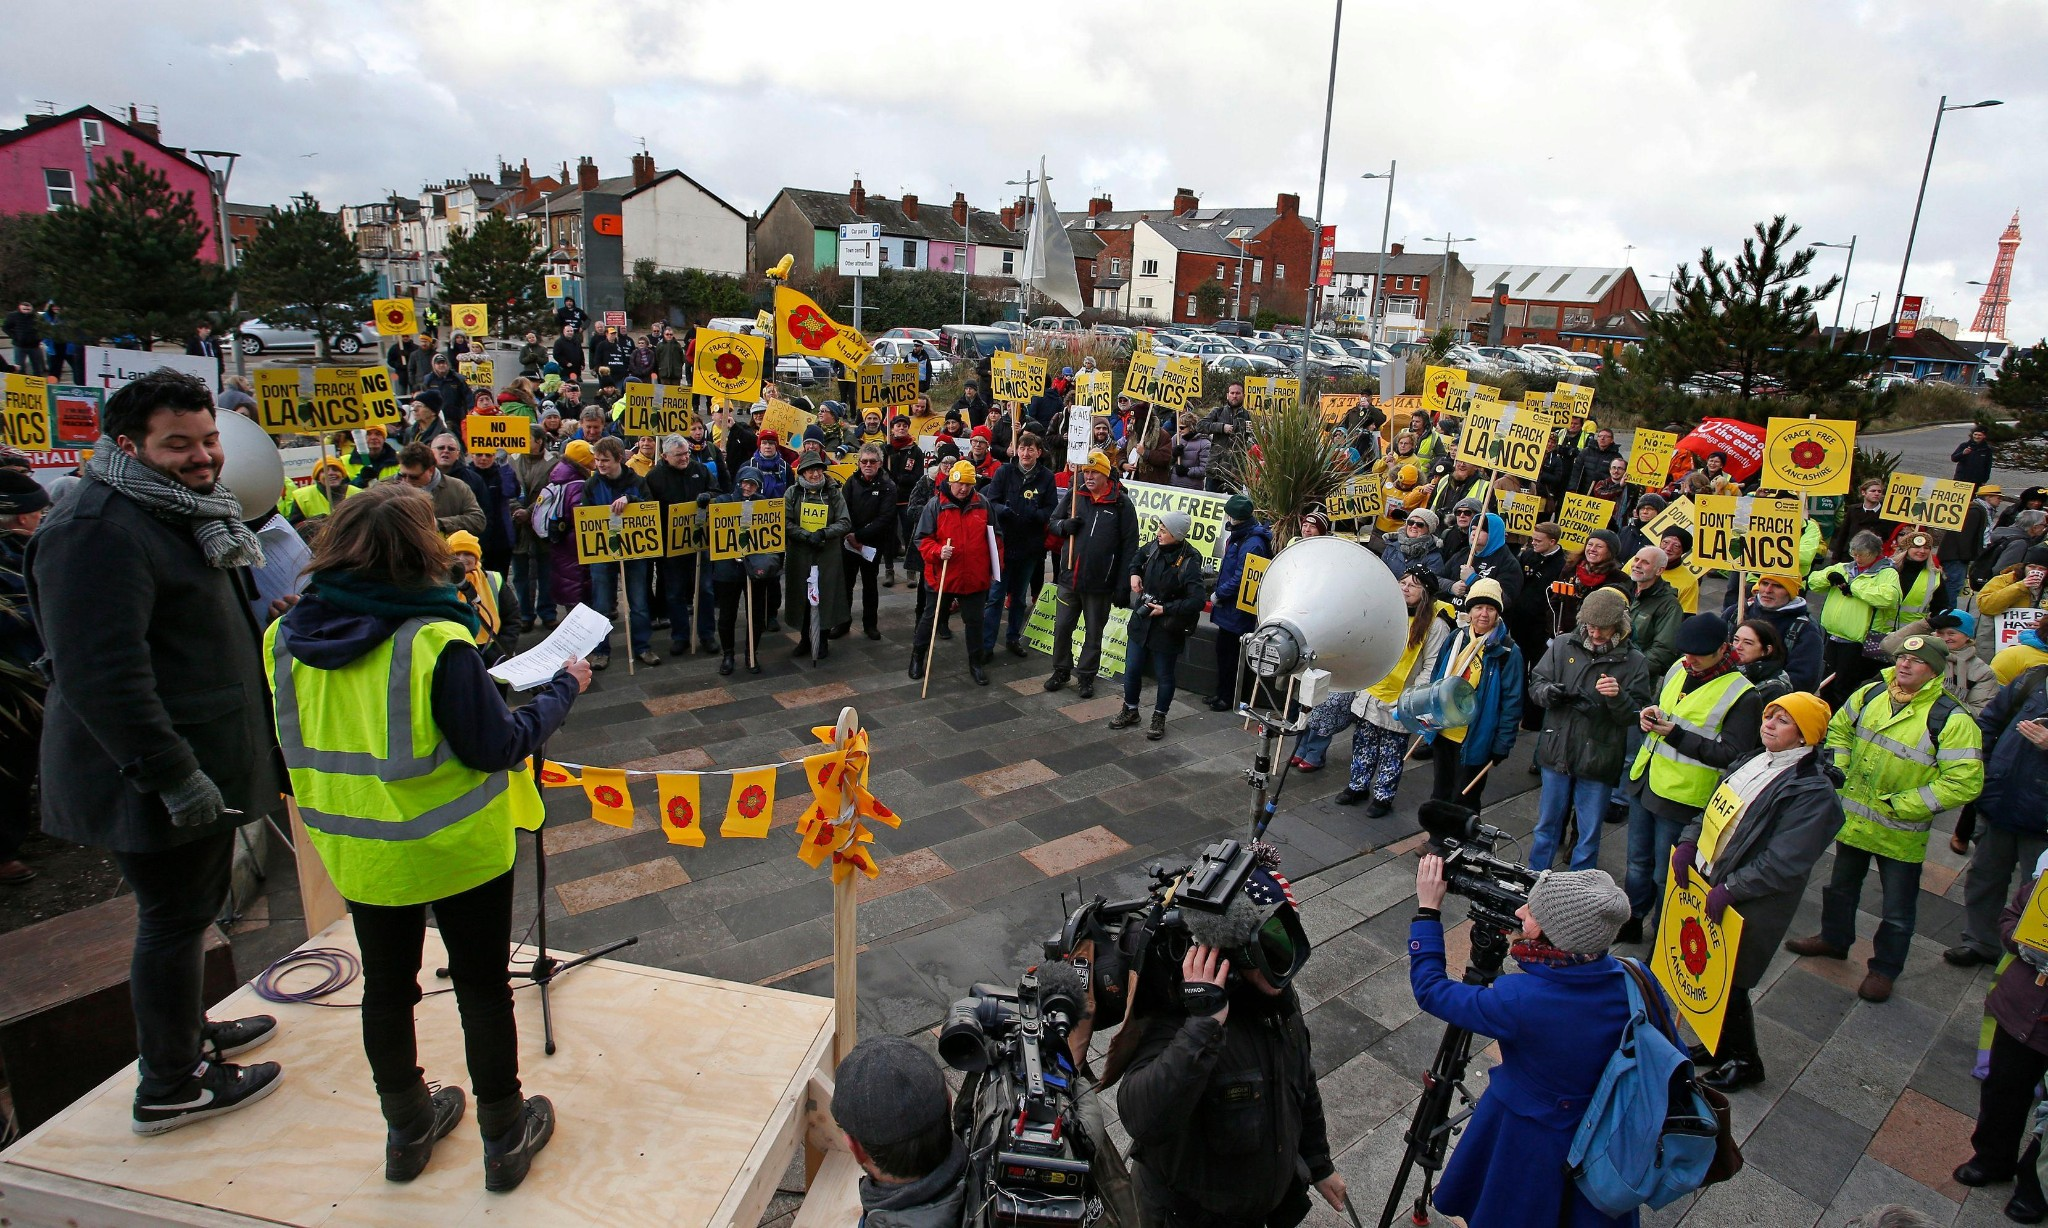 No Fracking In Lancashire - cover